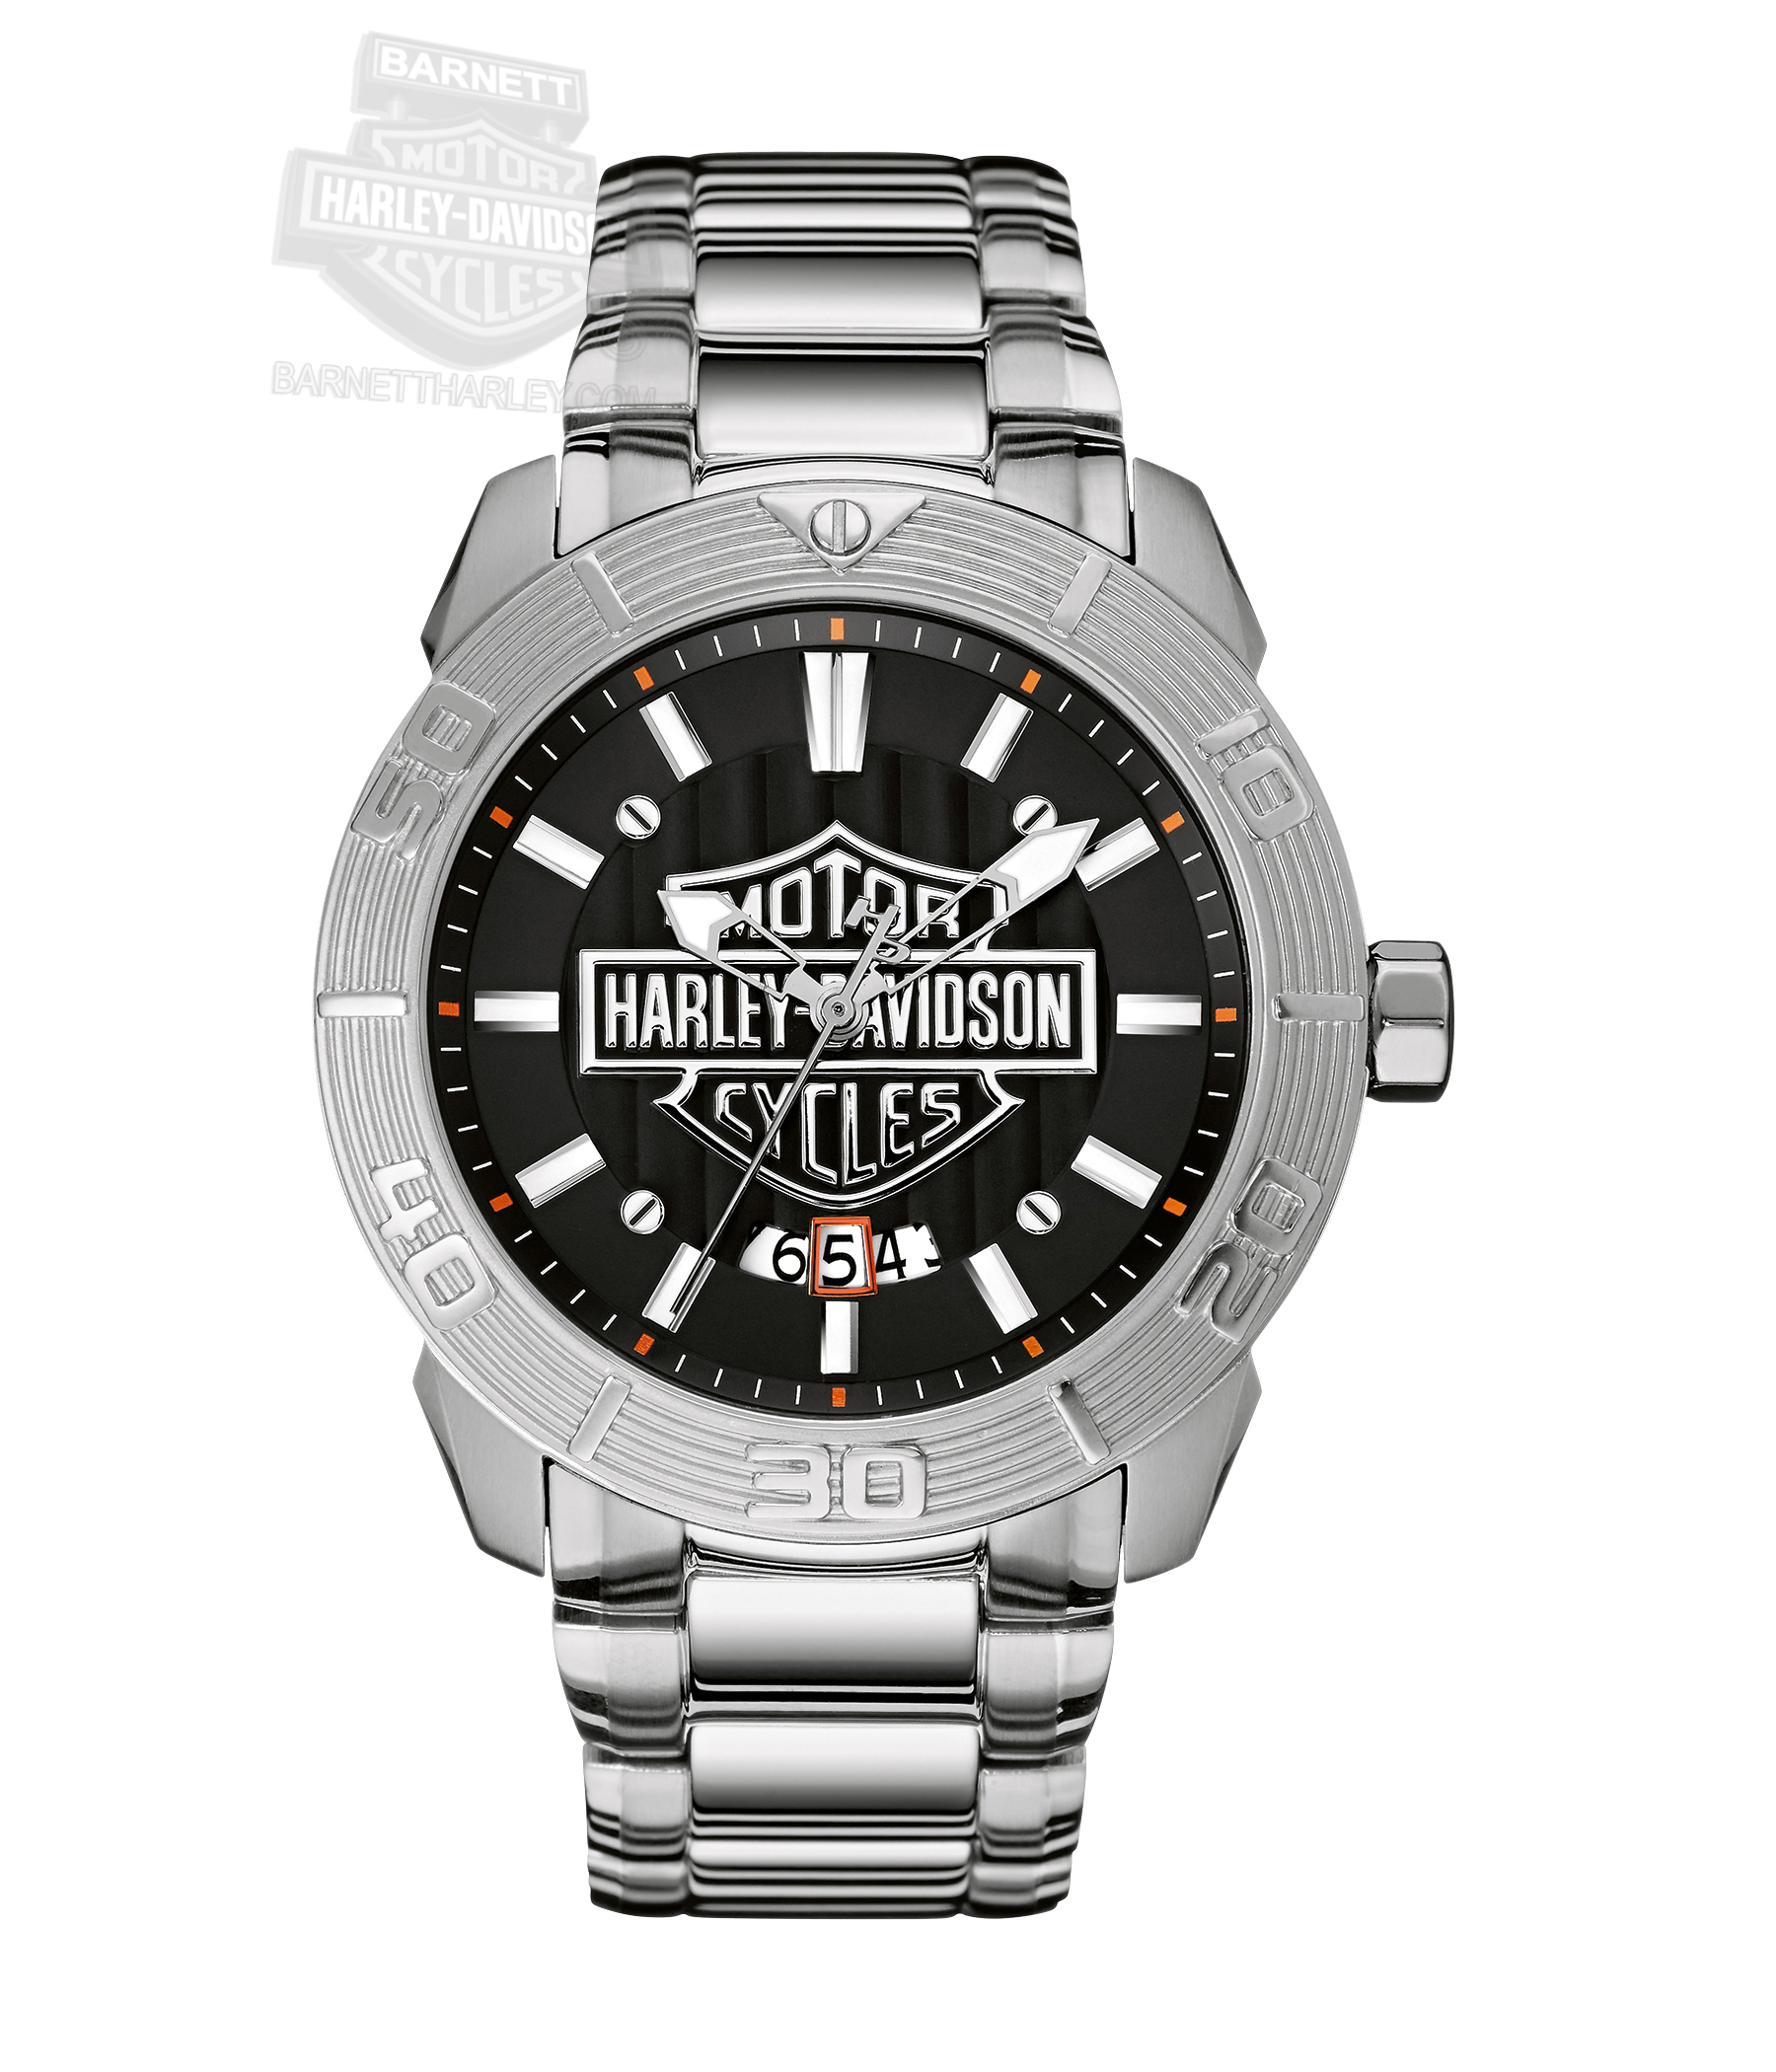 barnett harley davidson watches harley davidson® mens b s logo vertical embossed pattern black dial watch 76b169 by